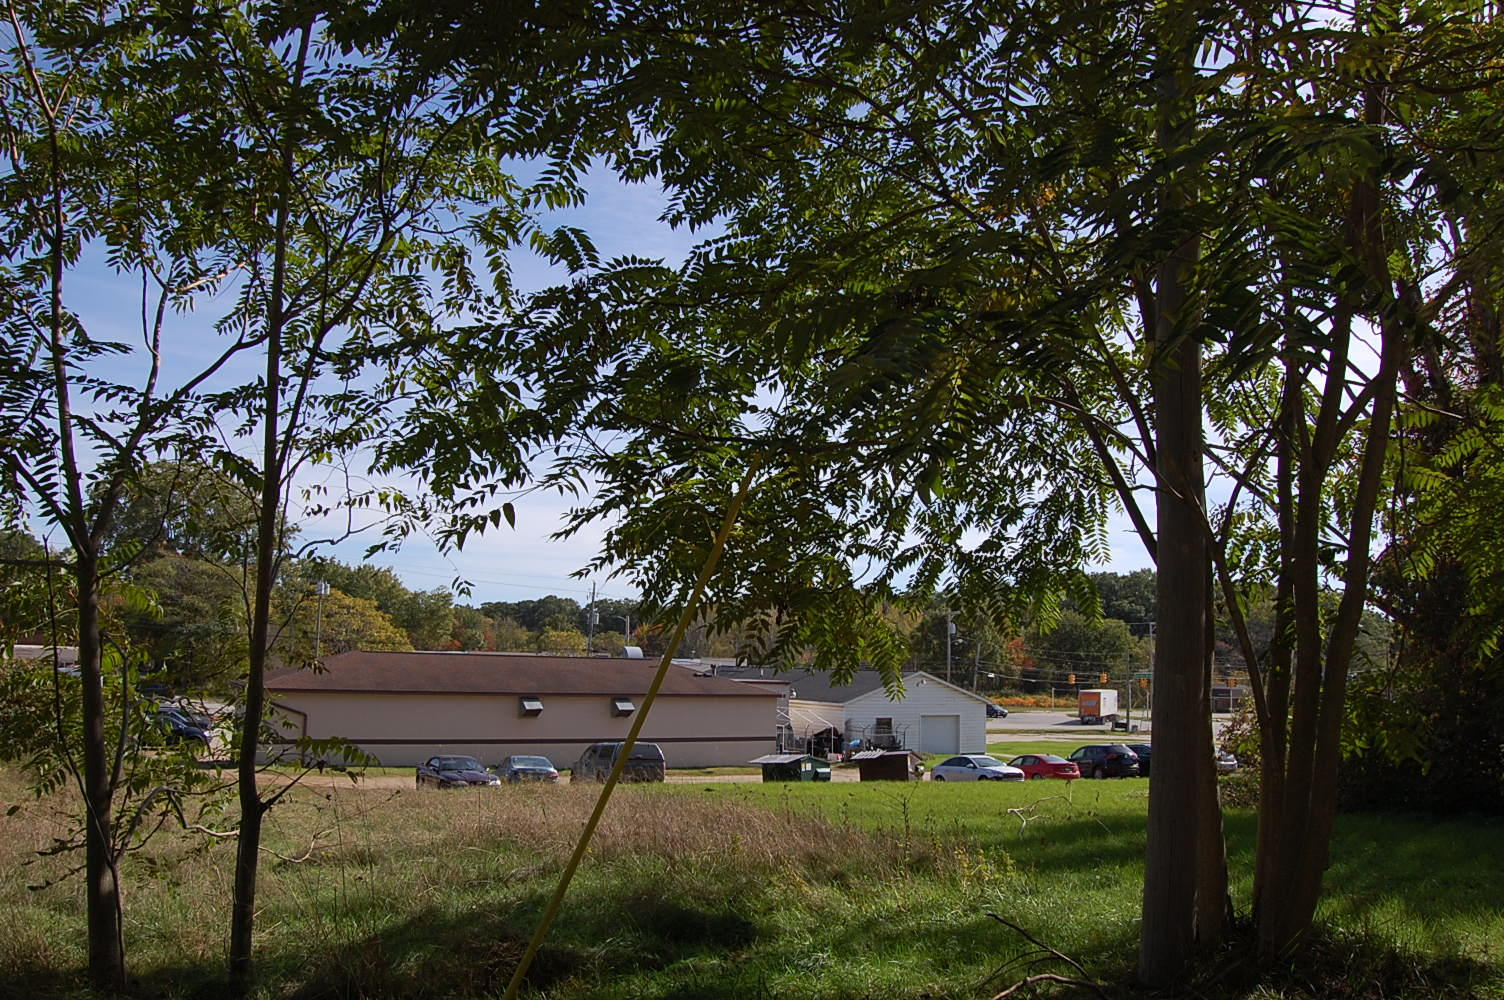 Invest in Your Dream Business With This Michigan Commercial Parcel - Image 5